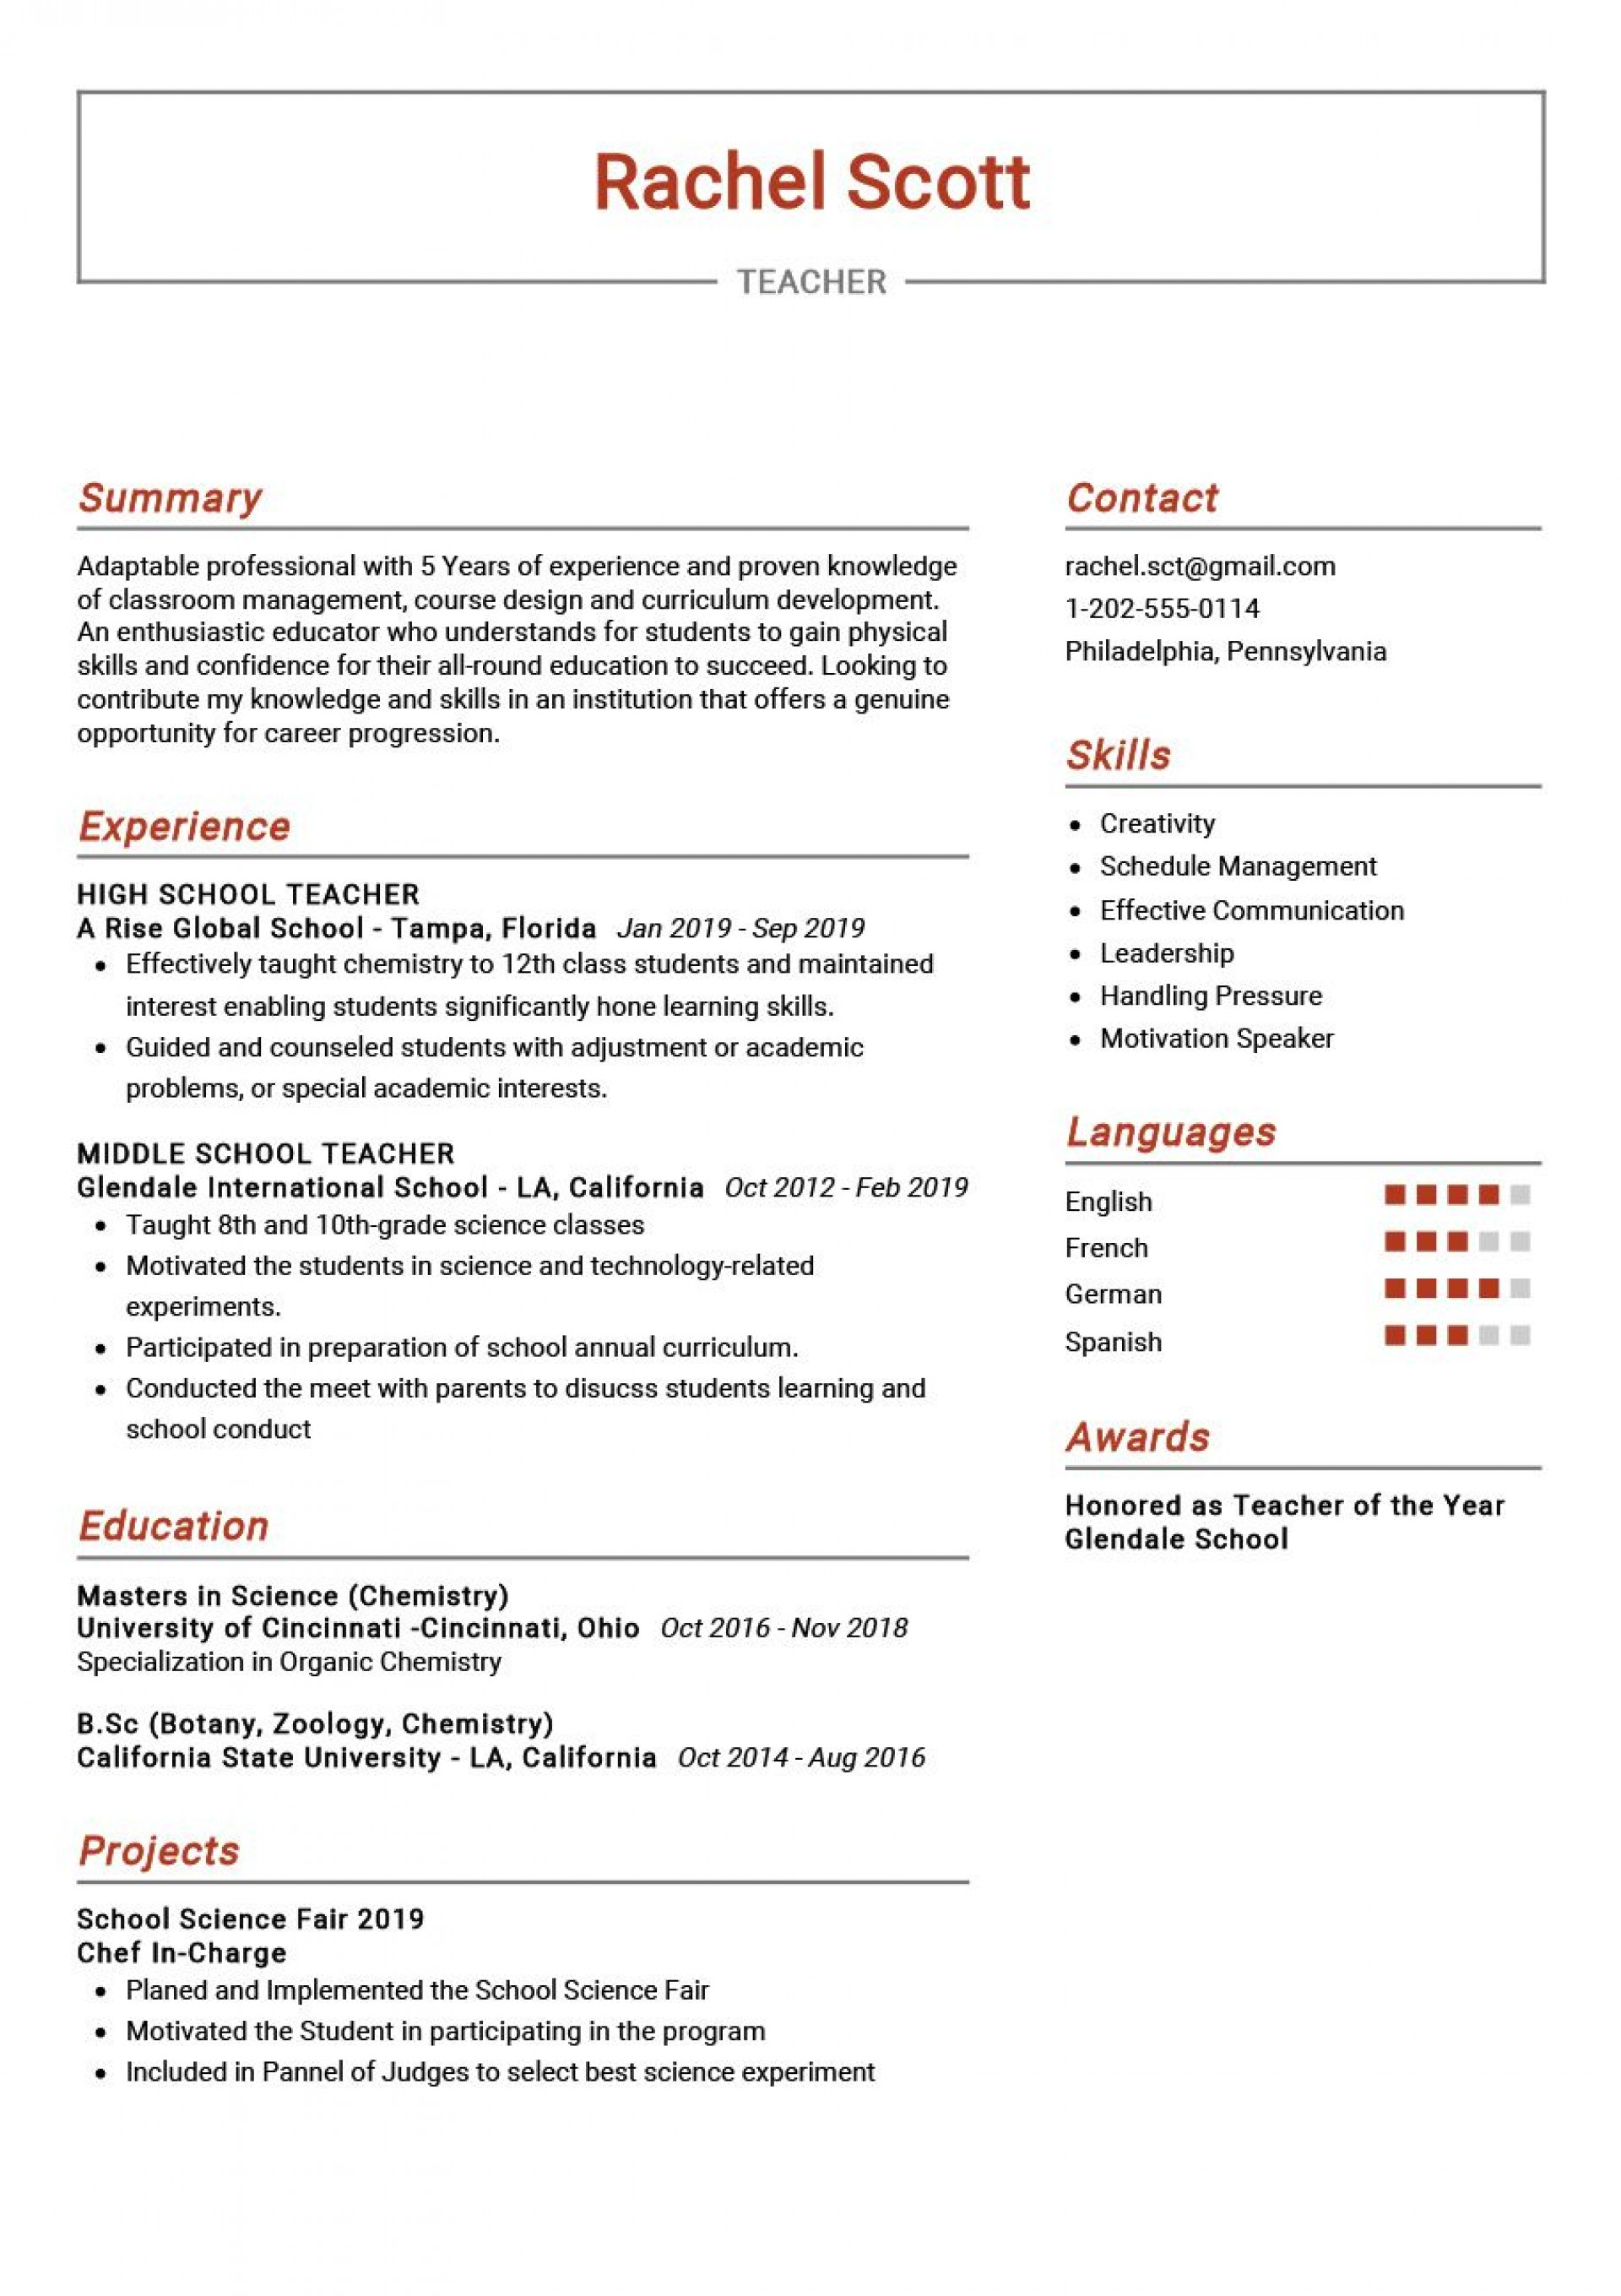 008 Rare Resume Template For Teaching High Resolution  Sample Job Example Teacher Assistant In India1920